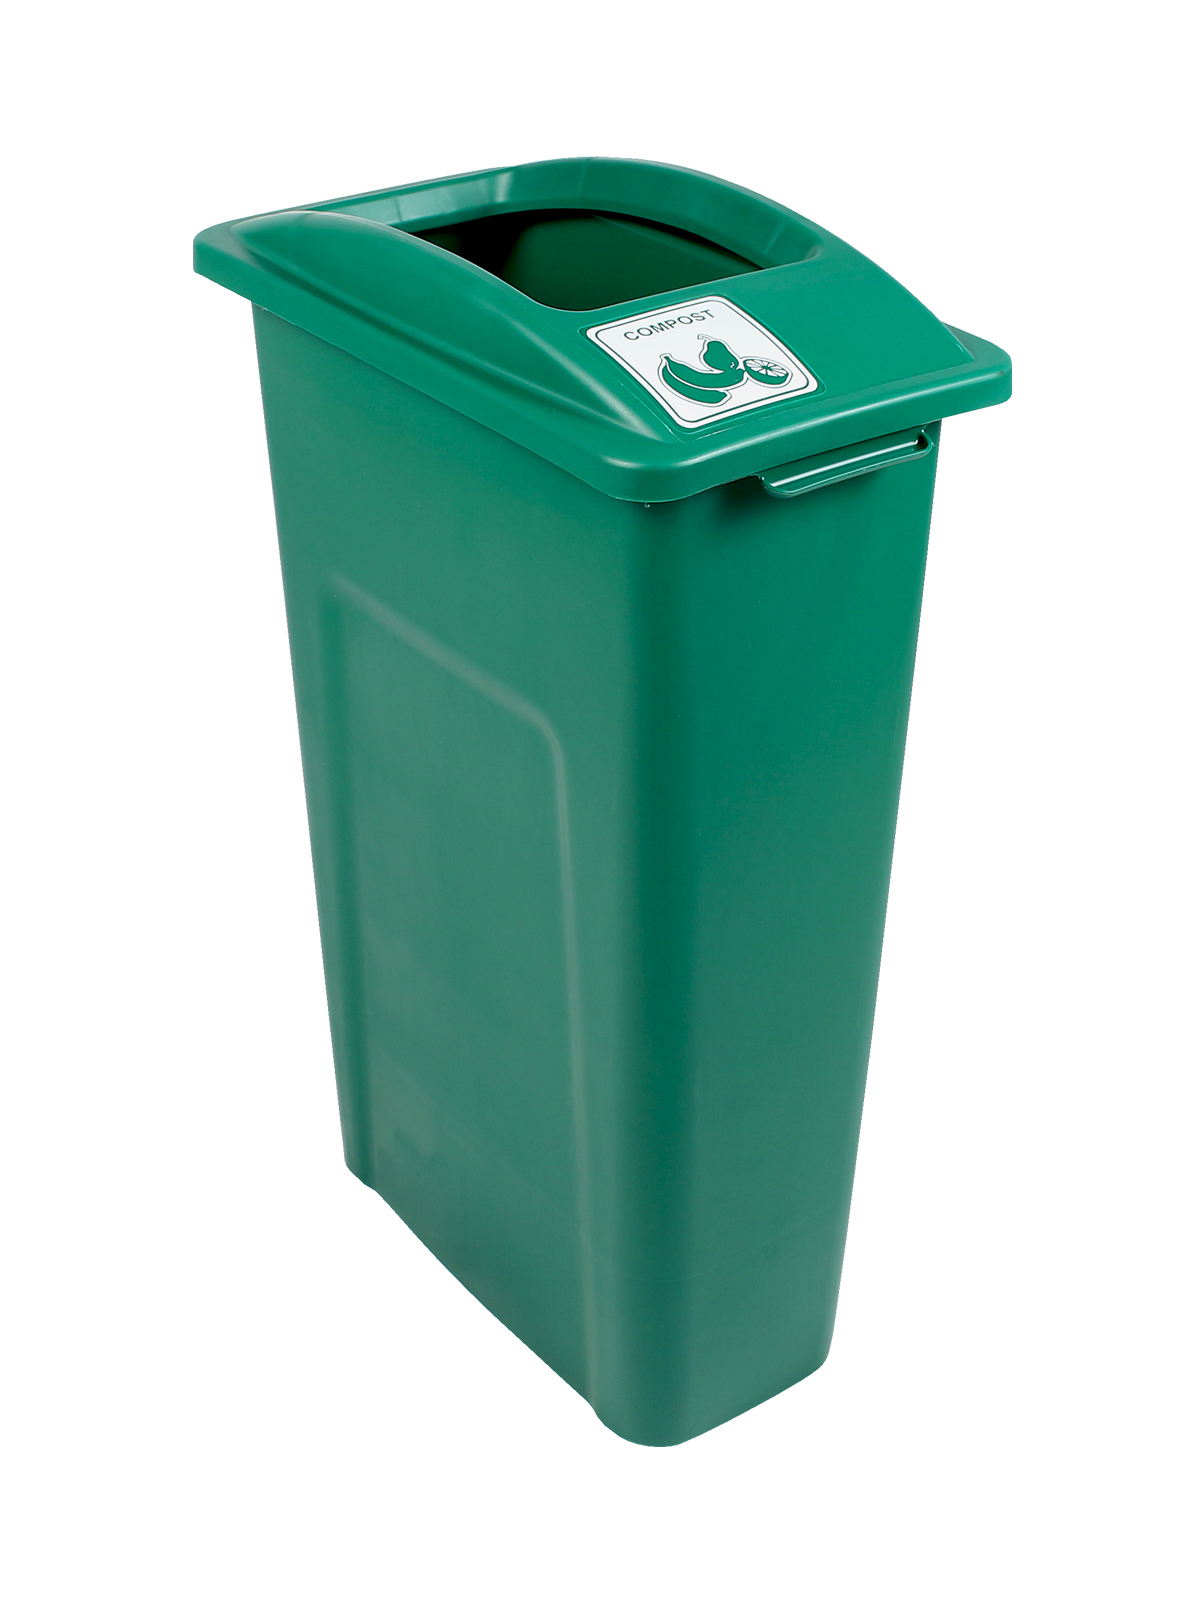 WASTE WATCHER - Single - Compost - Full - Green